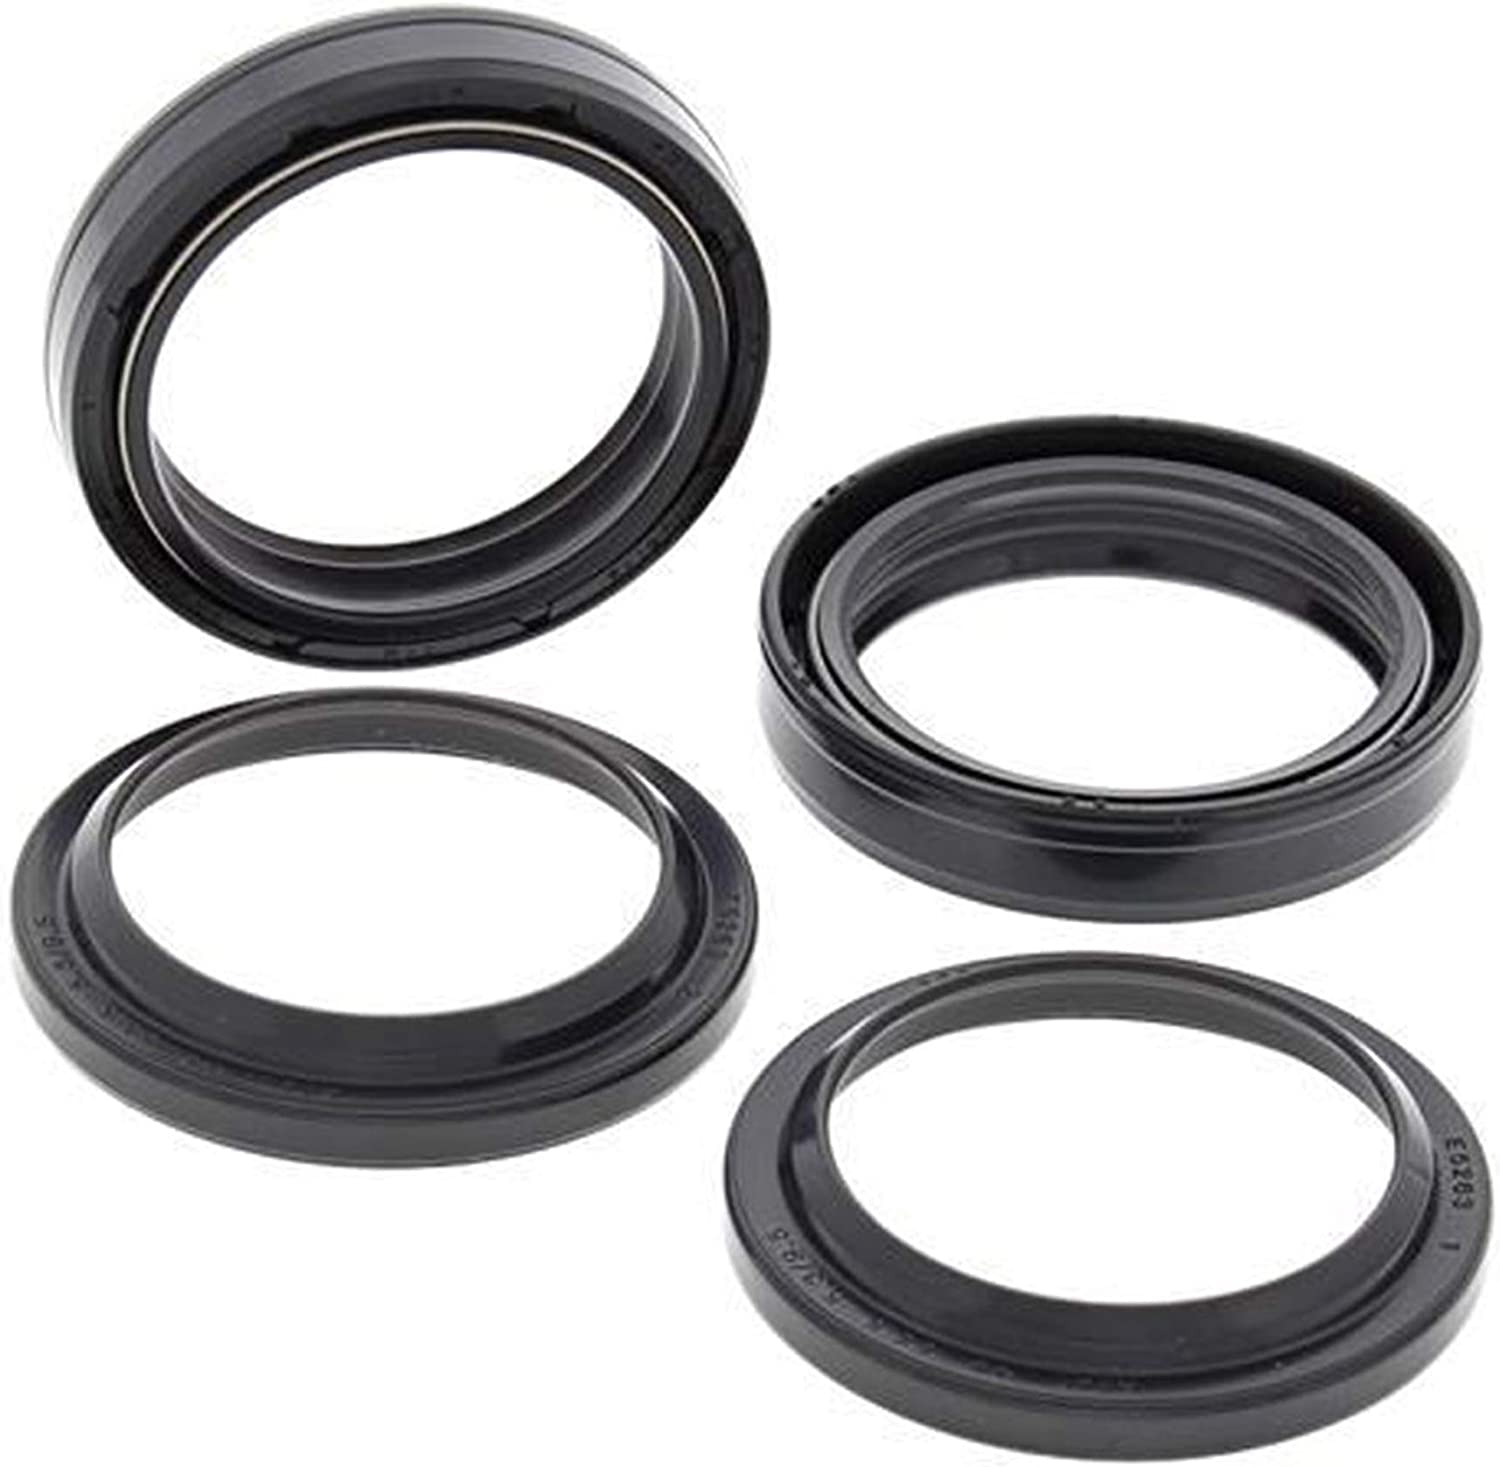 YZ 125 1984 Fork Seal and Wiper Set Yamaha YZ125